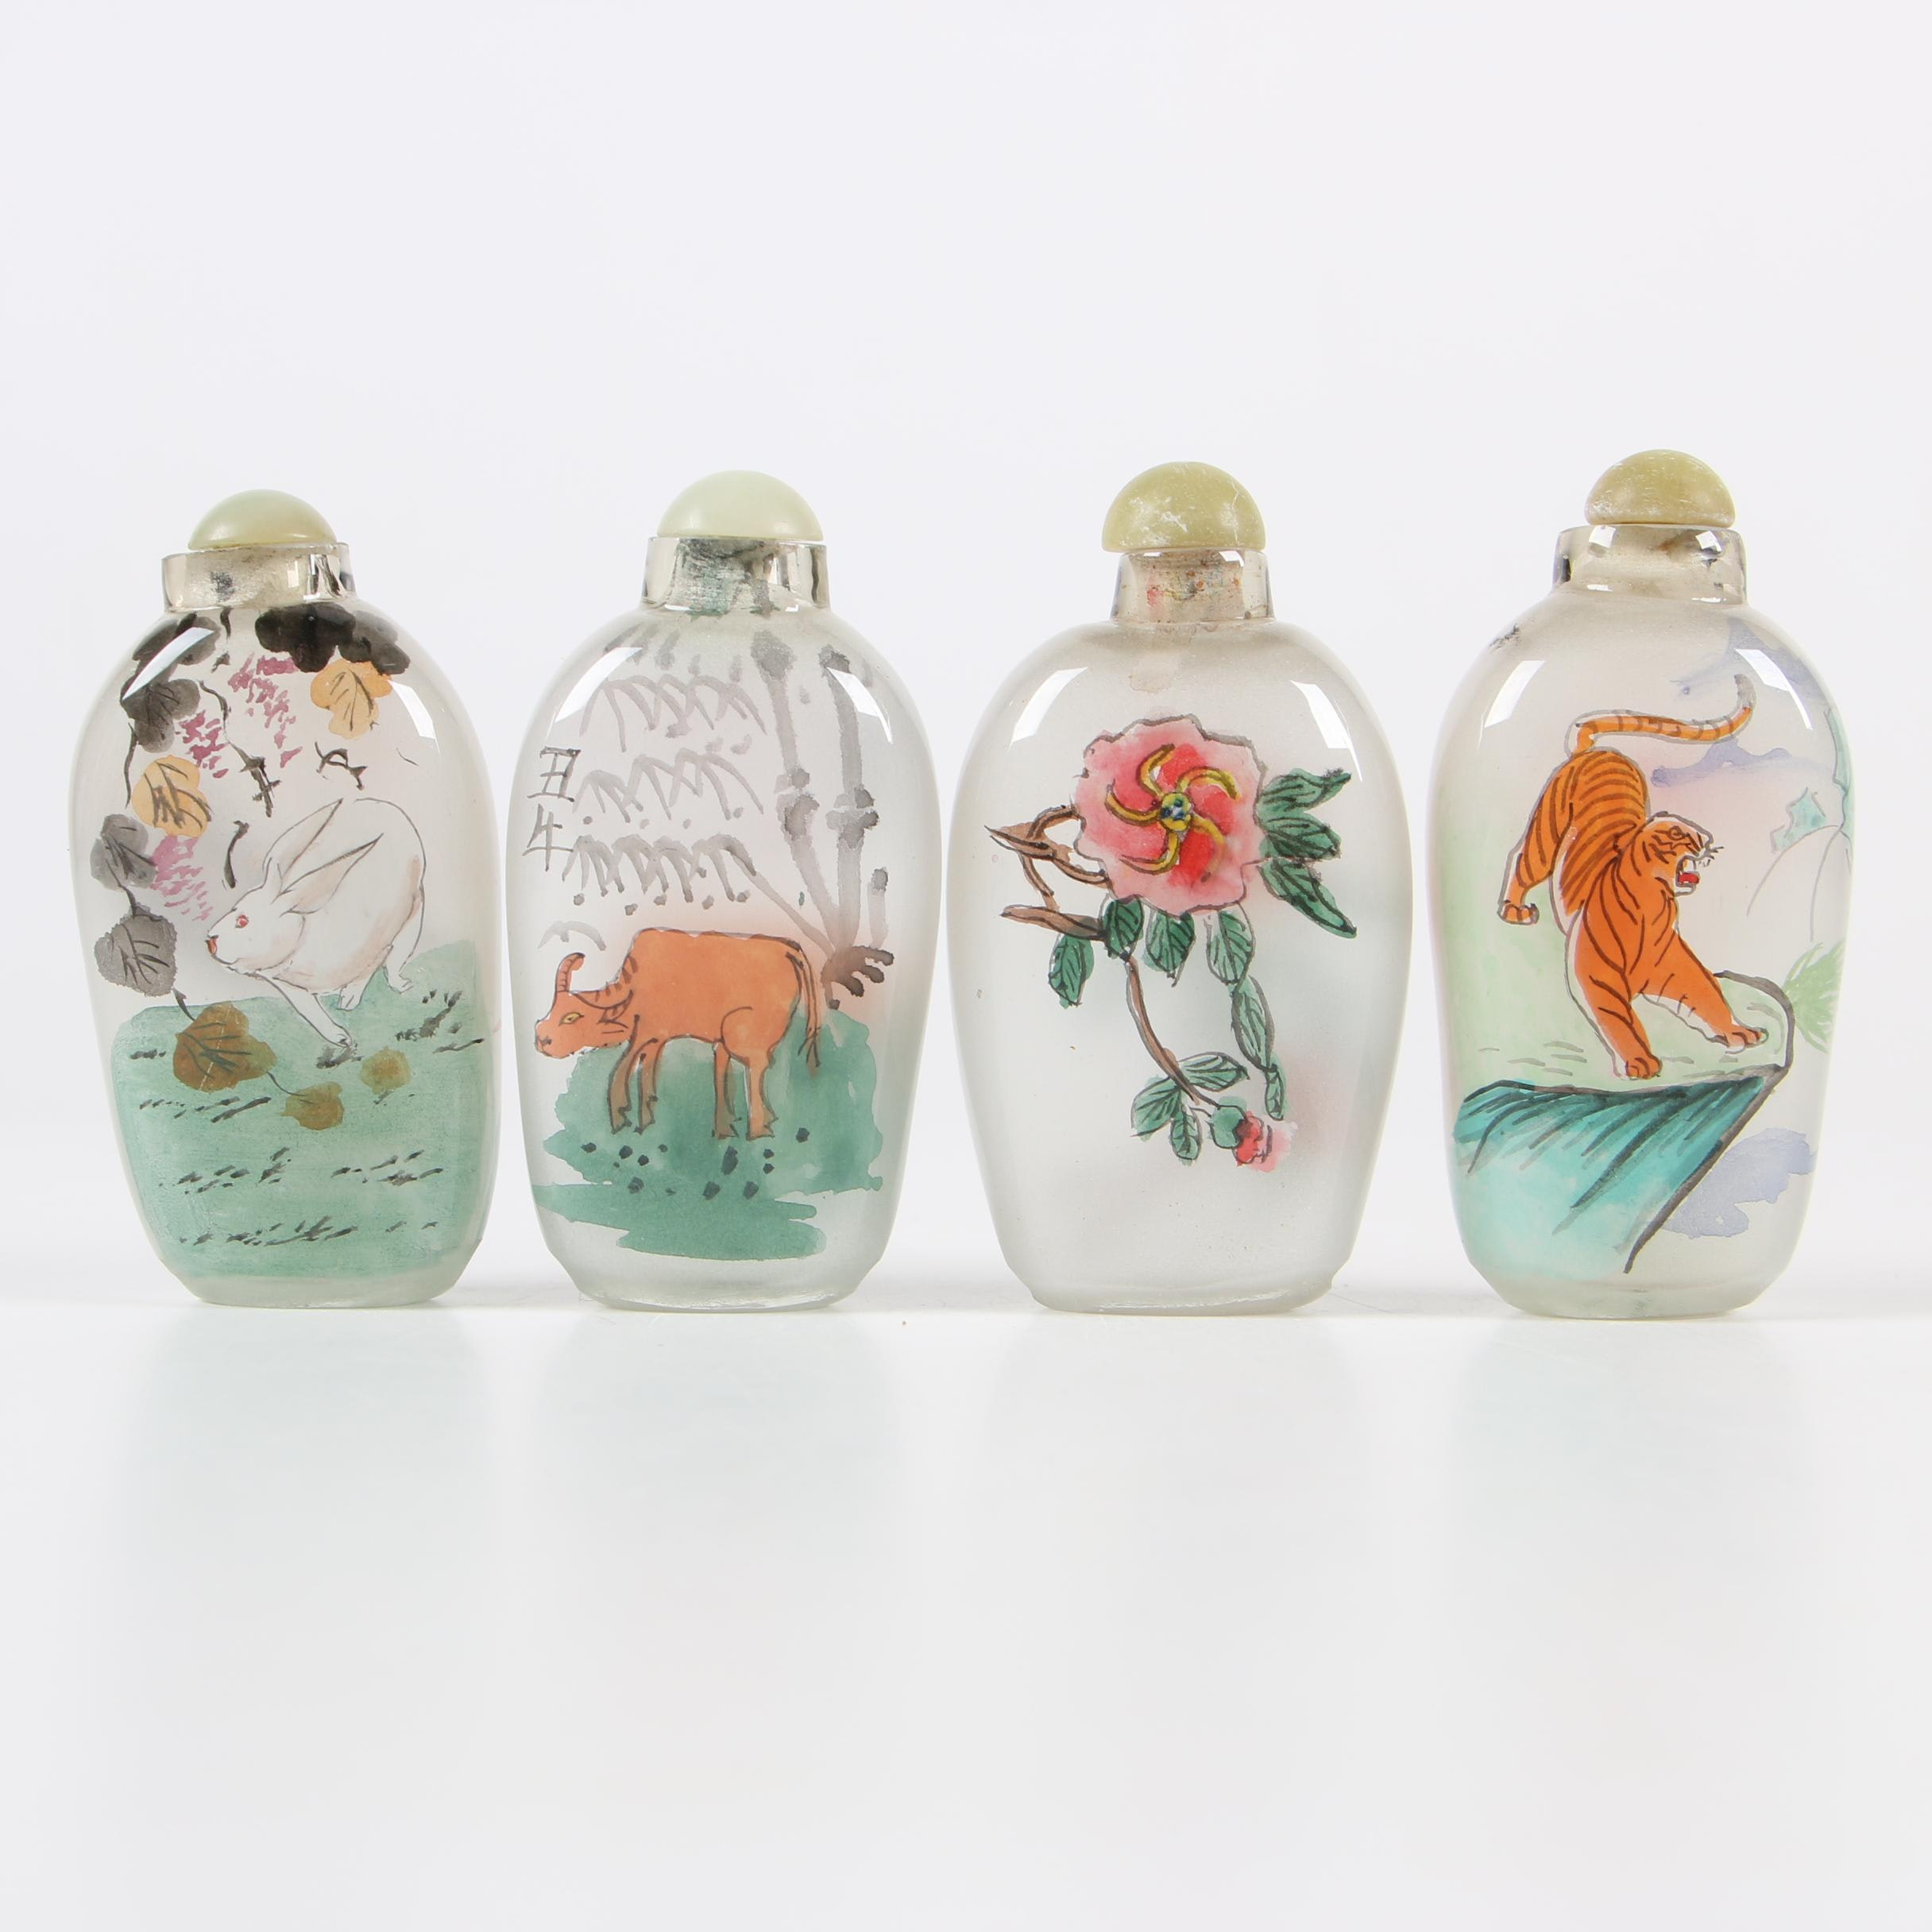 East Asian Painted Glass Snuff Bottles